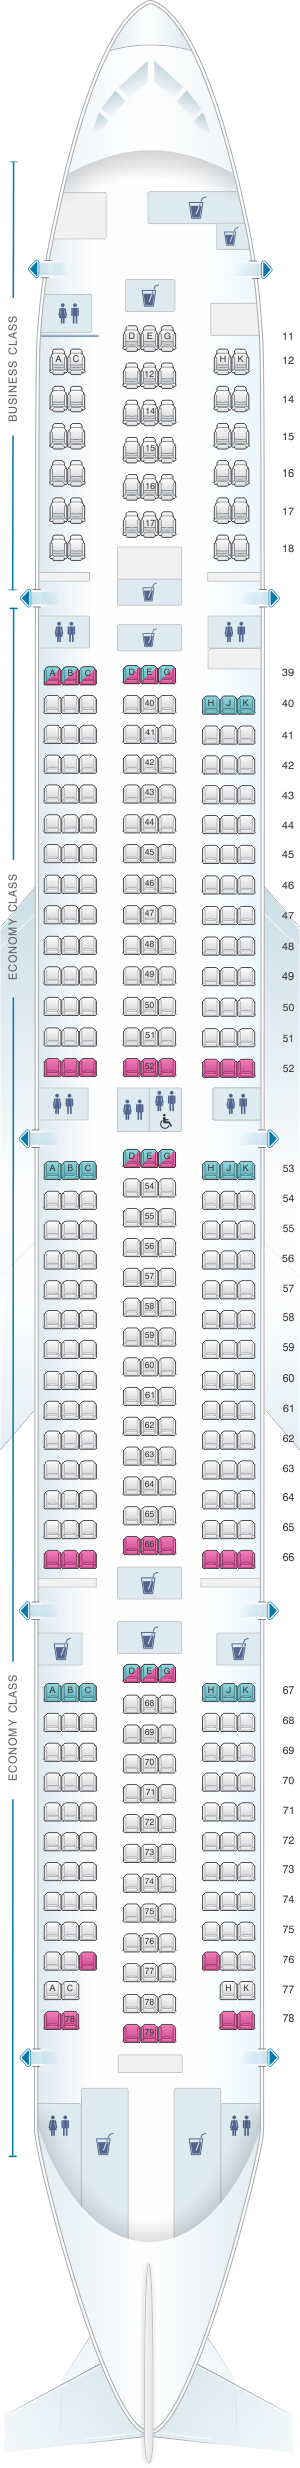 Seat map for Cathay Pacific Airways Boeing B777 300 (73Z)